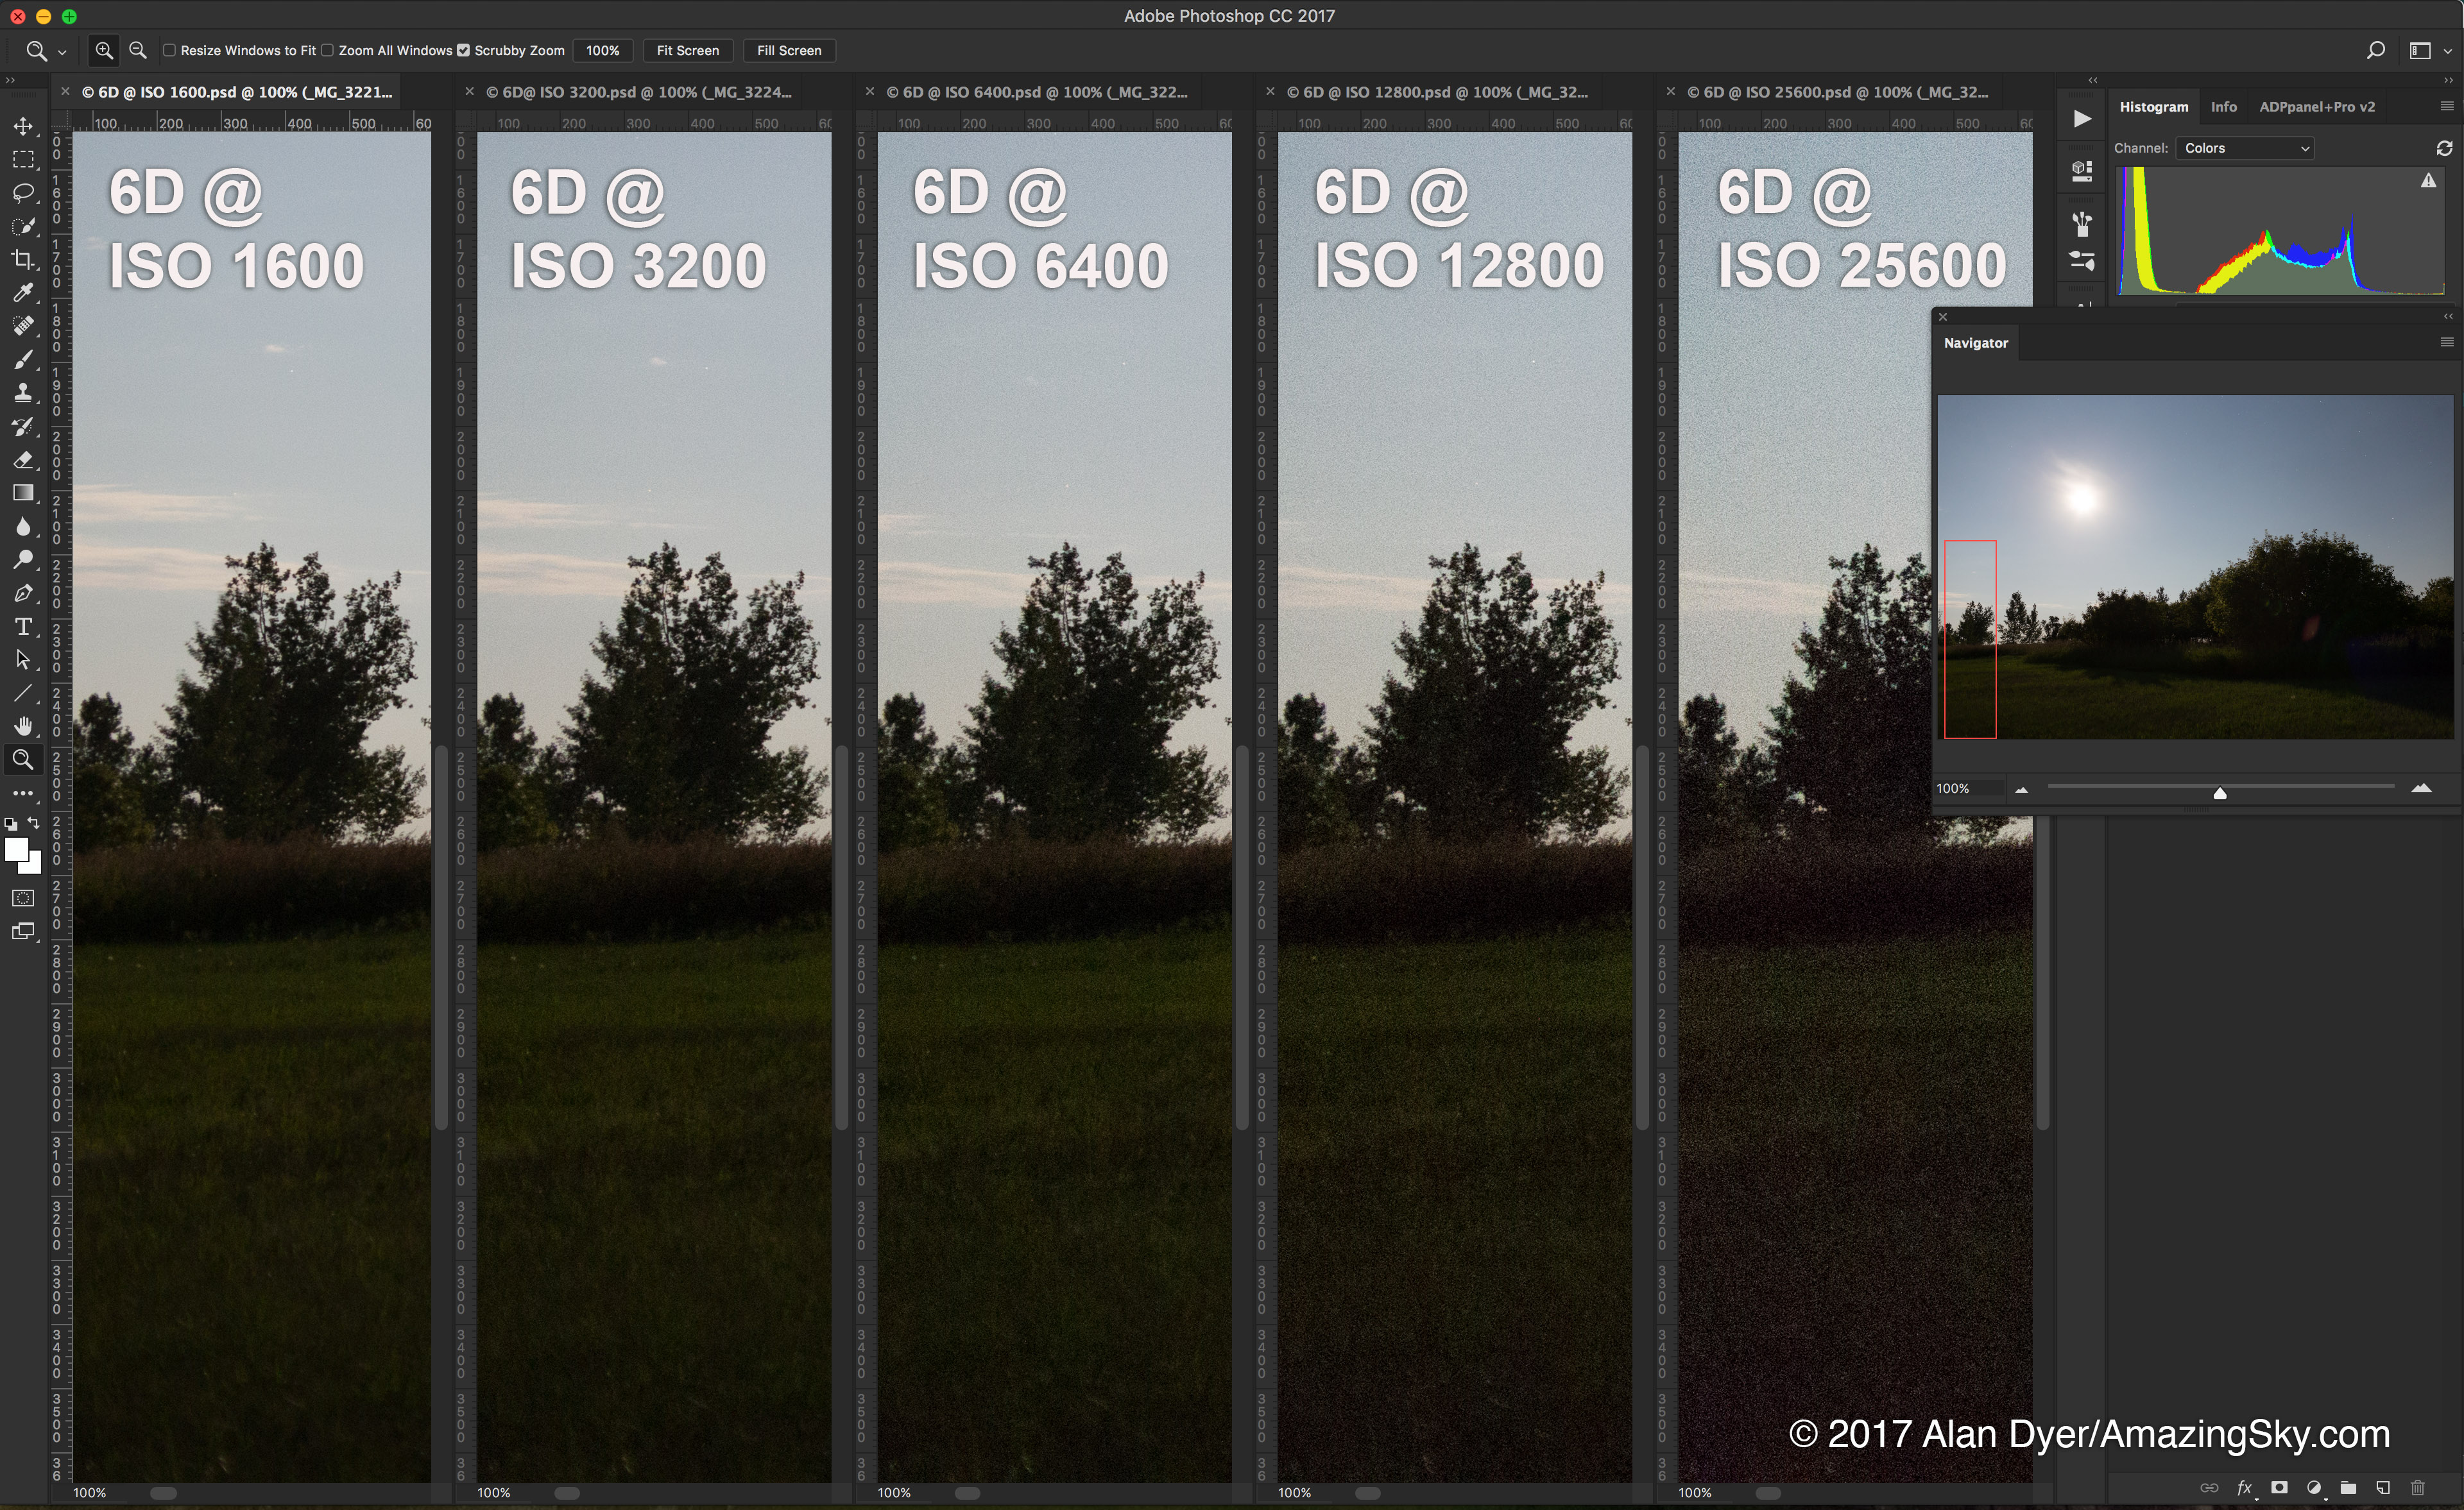 6D Noise at 5 ISOs